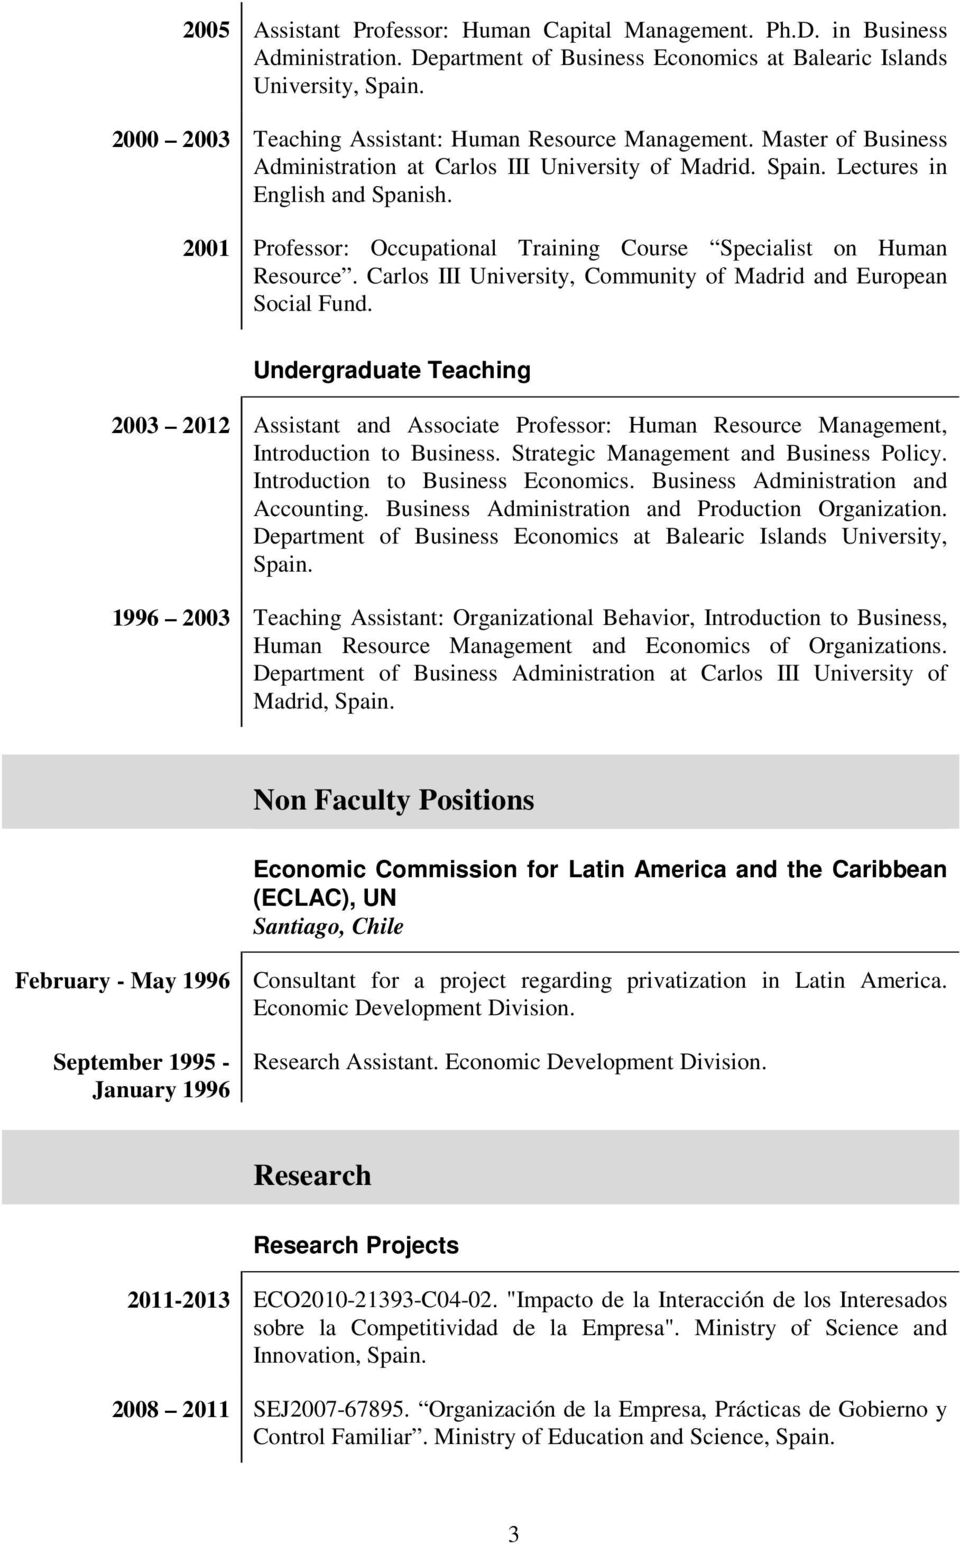 2001 Professor: Occupational Training Course Specialist on Human Resource. Carlos III University, Community of Madrid and European Social Fund.